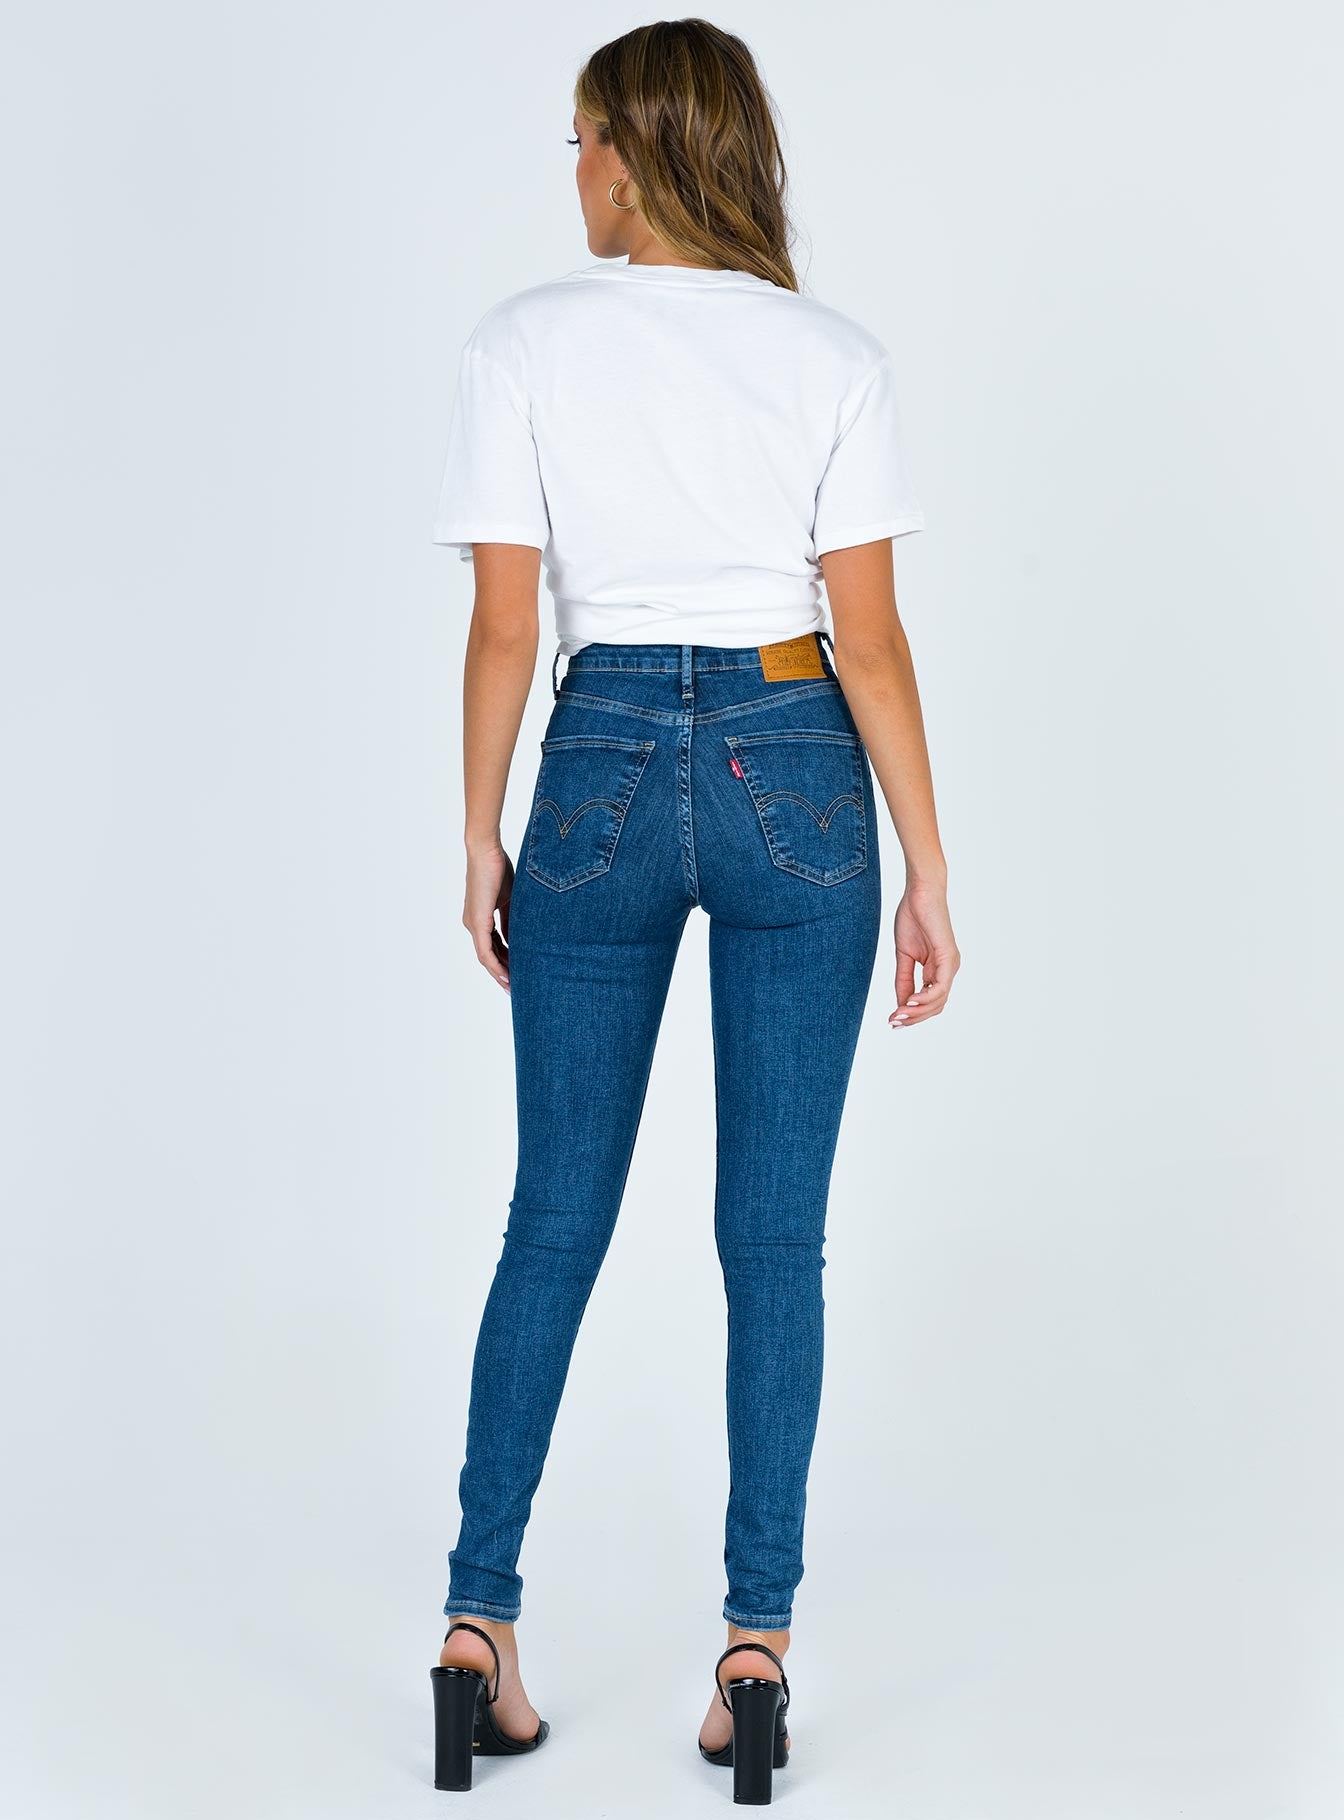 Levi's Mile High Super Skinny Tempo So Stoned Jeans